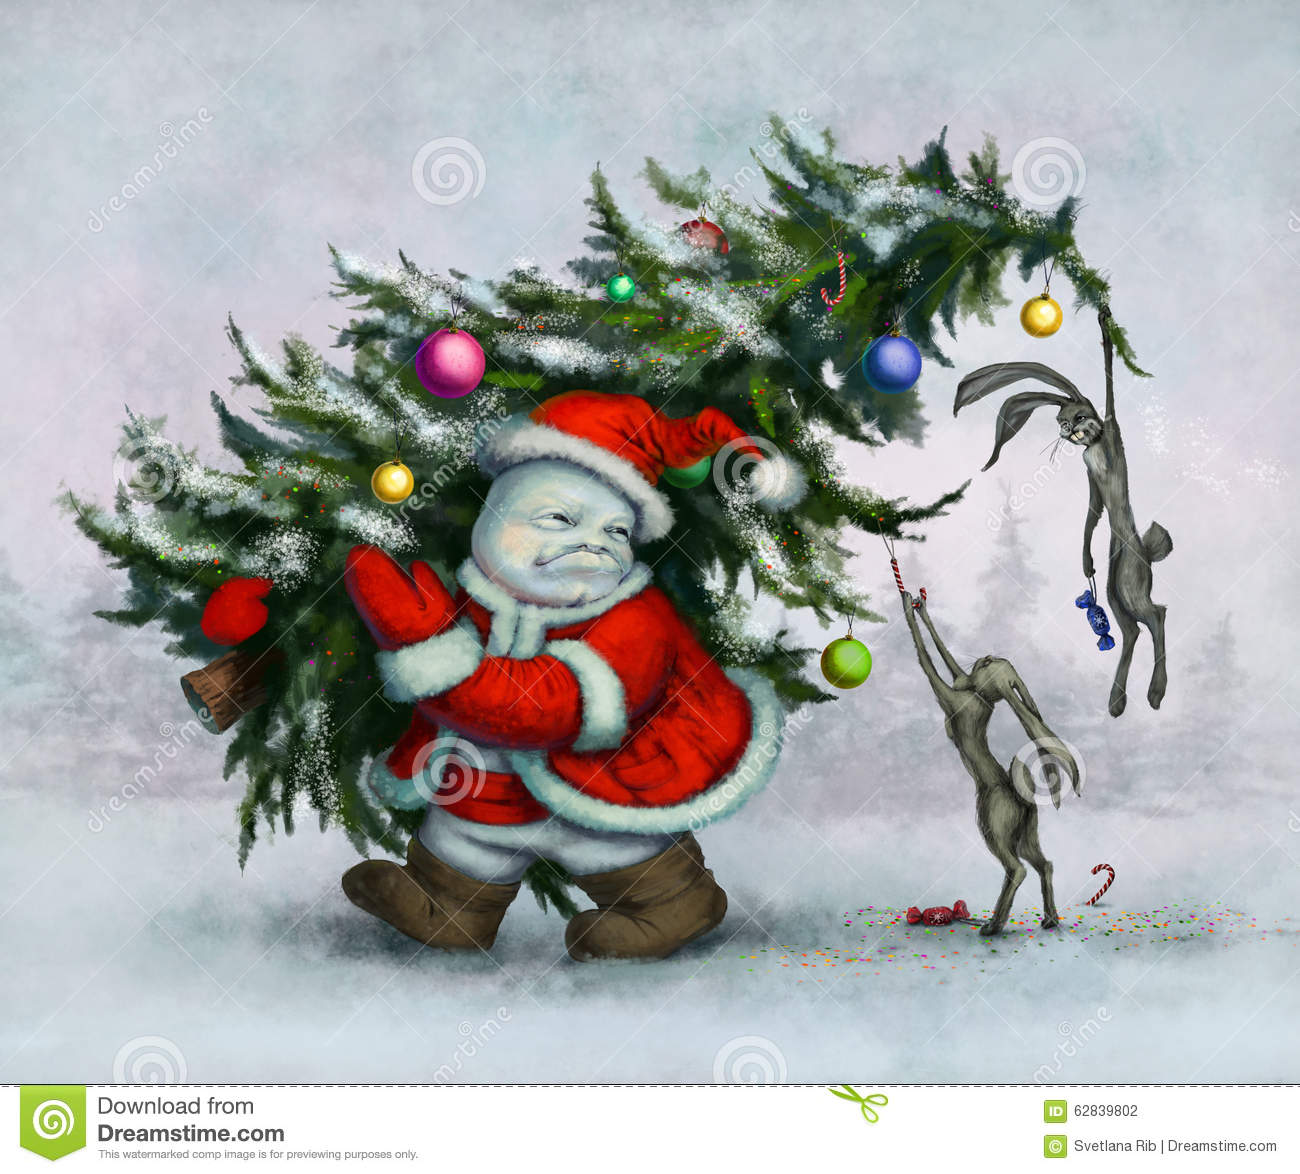 Snowman and hares